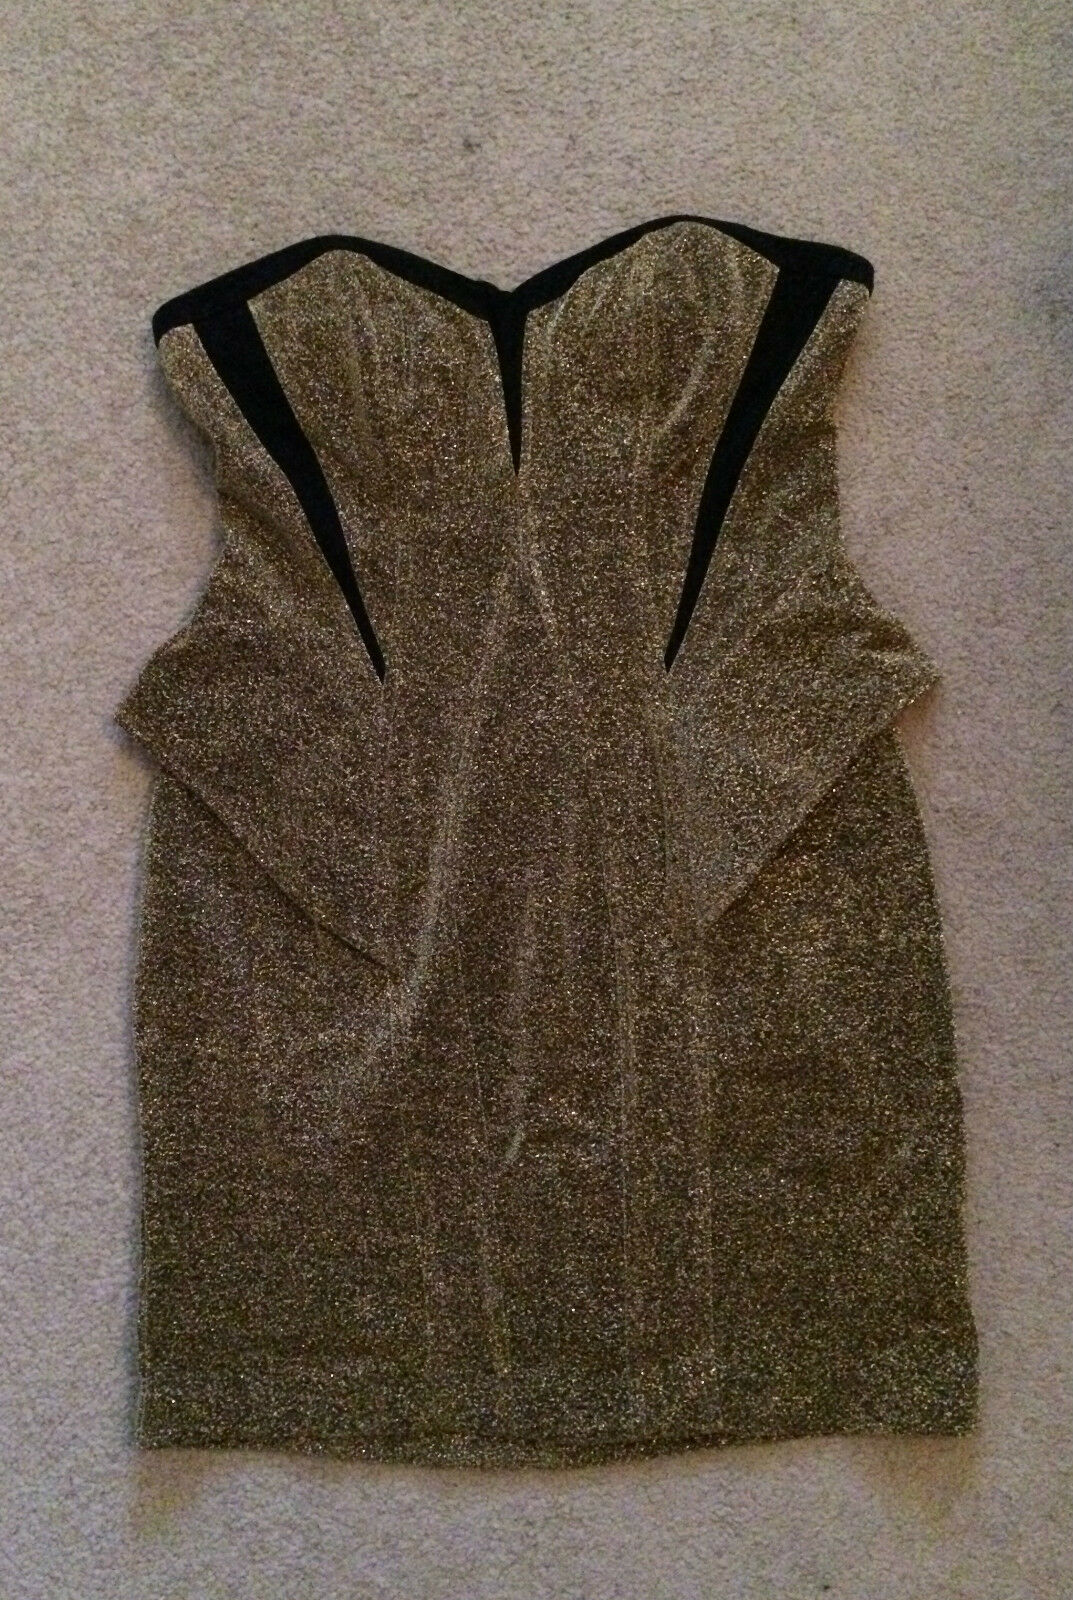 Arden B Metallic Tube Peplum Dress Strapless Strapless Strapless gold Small or Large b2ad45